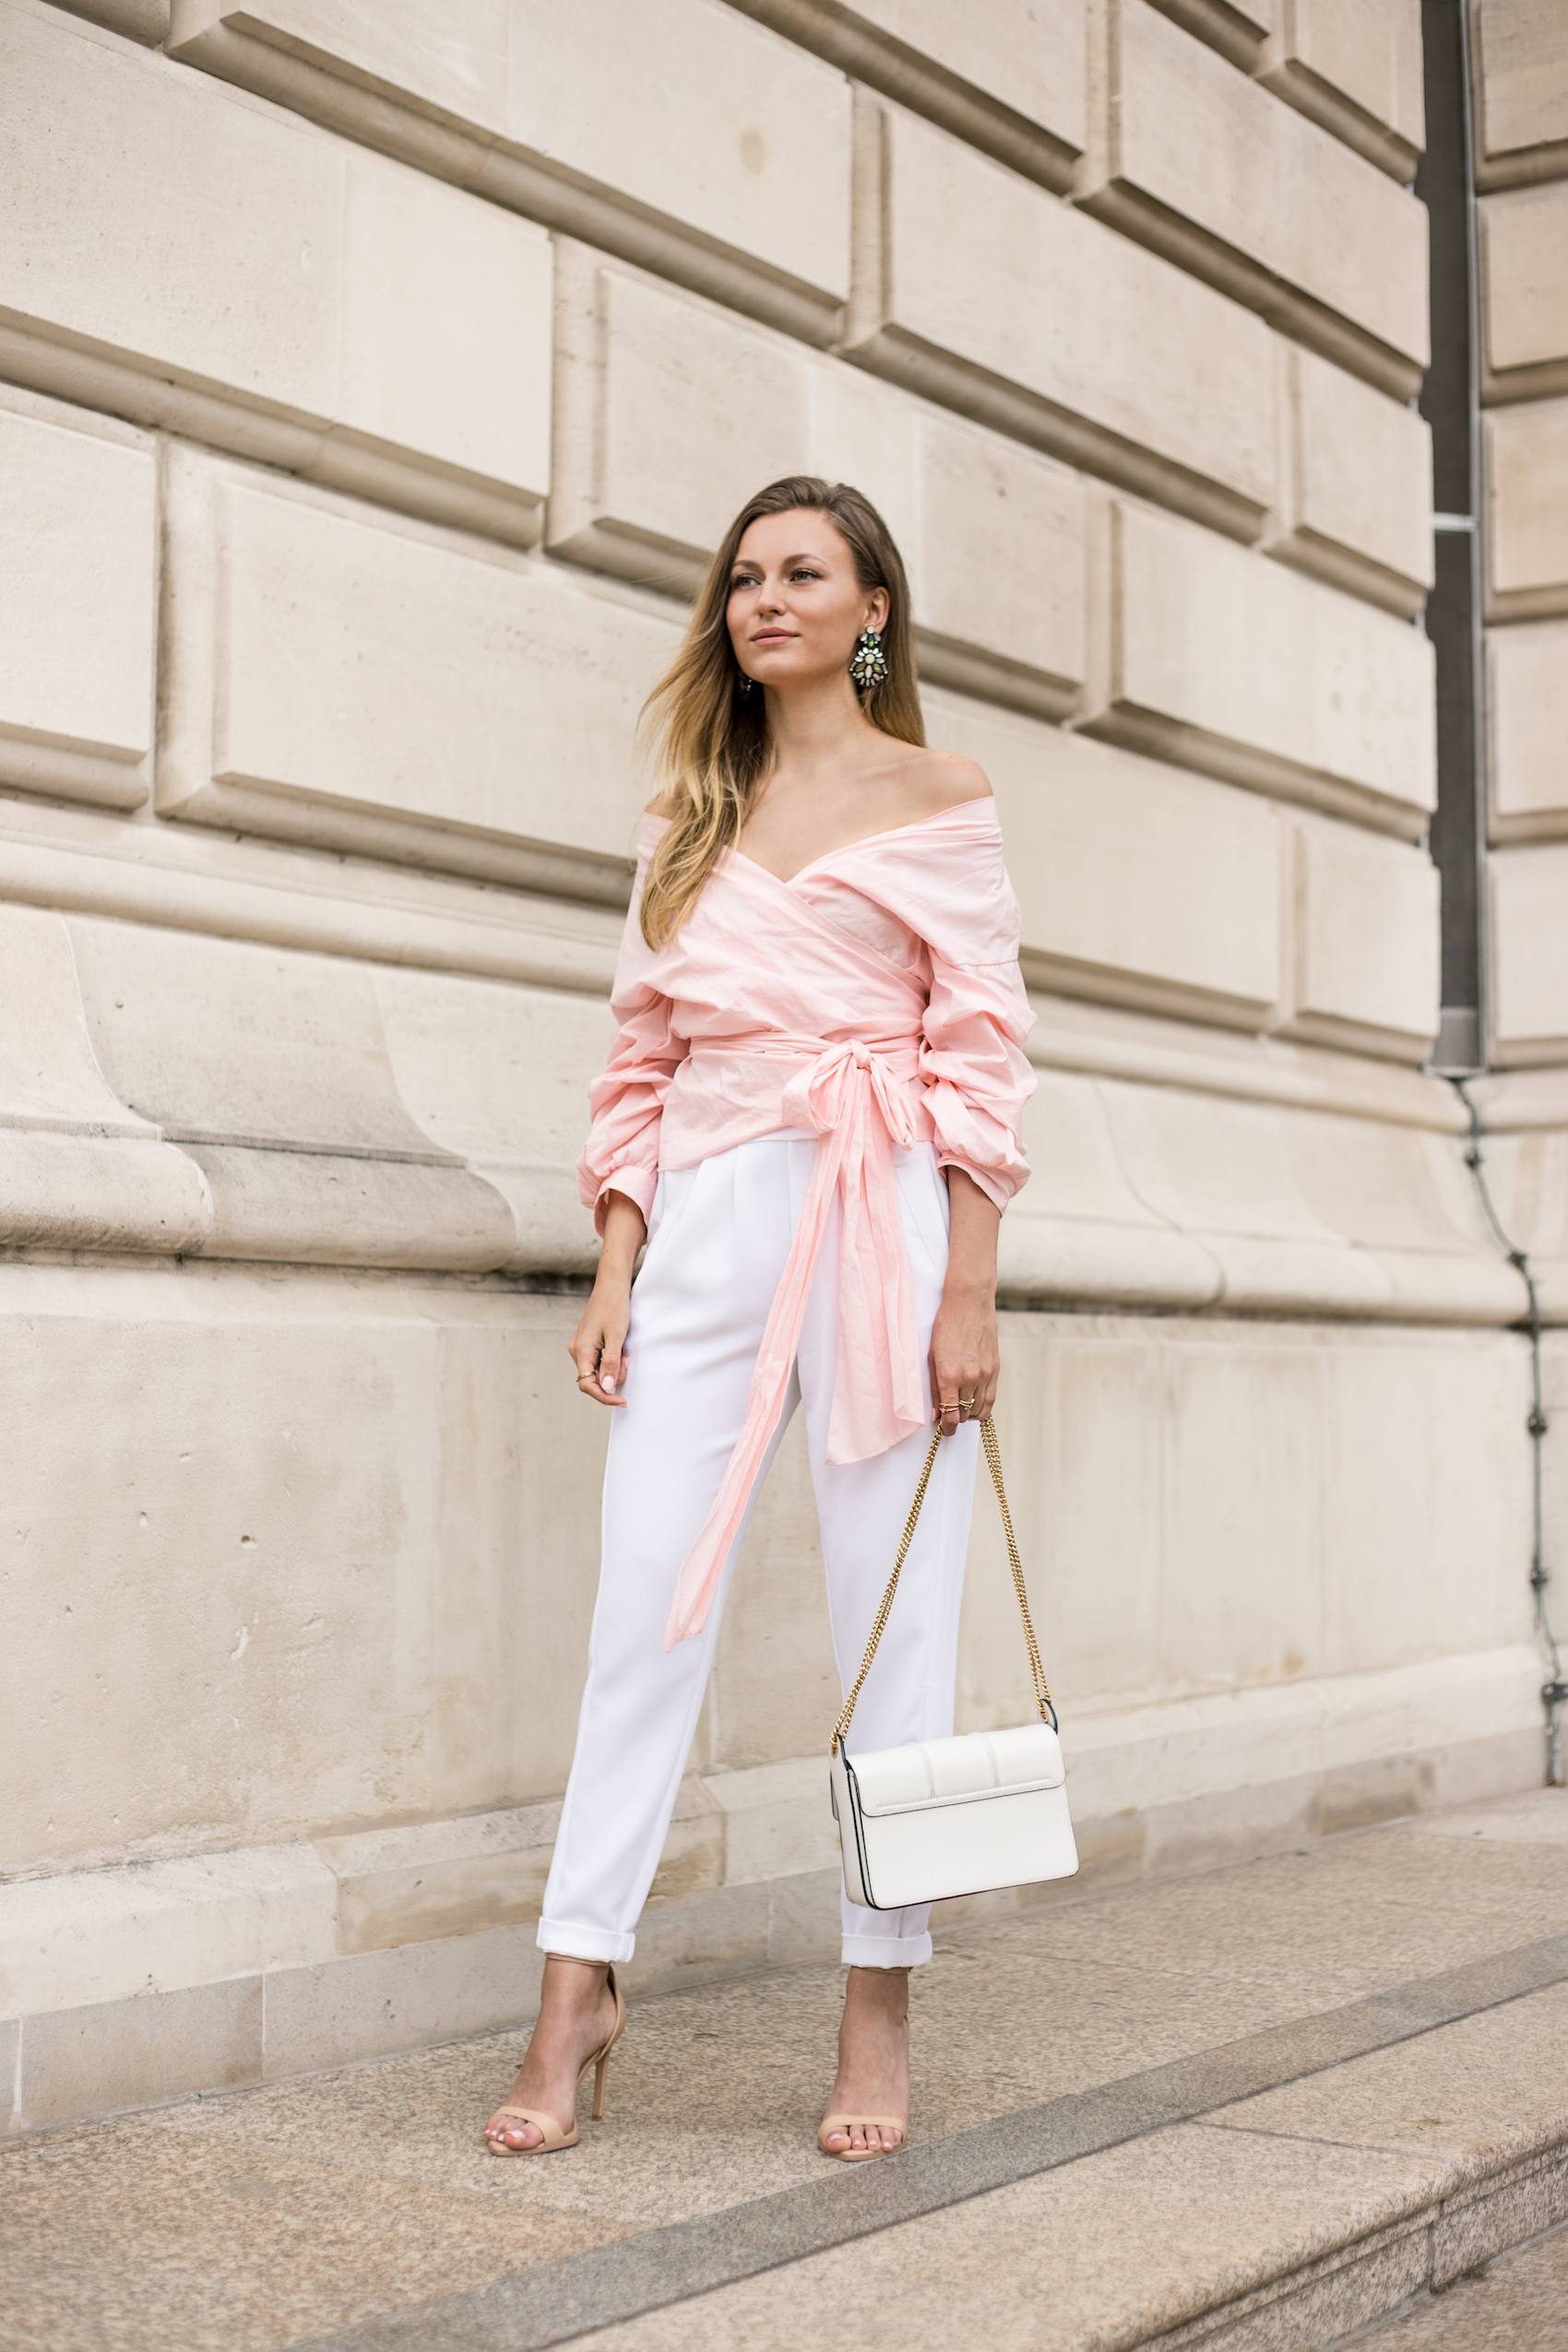 pink-puff-sleeve-bow-tie-outfit-livia-auer-IMG_7202